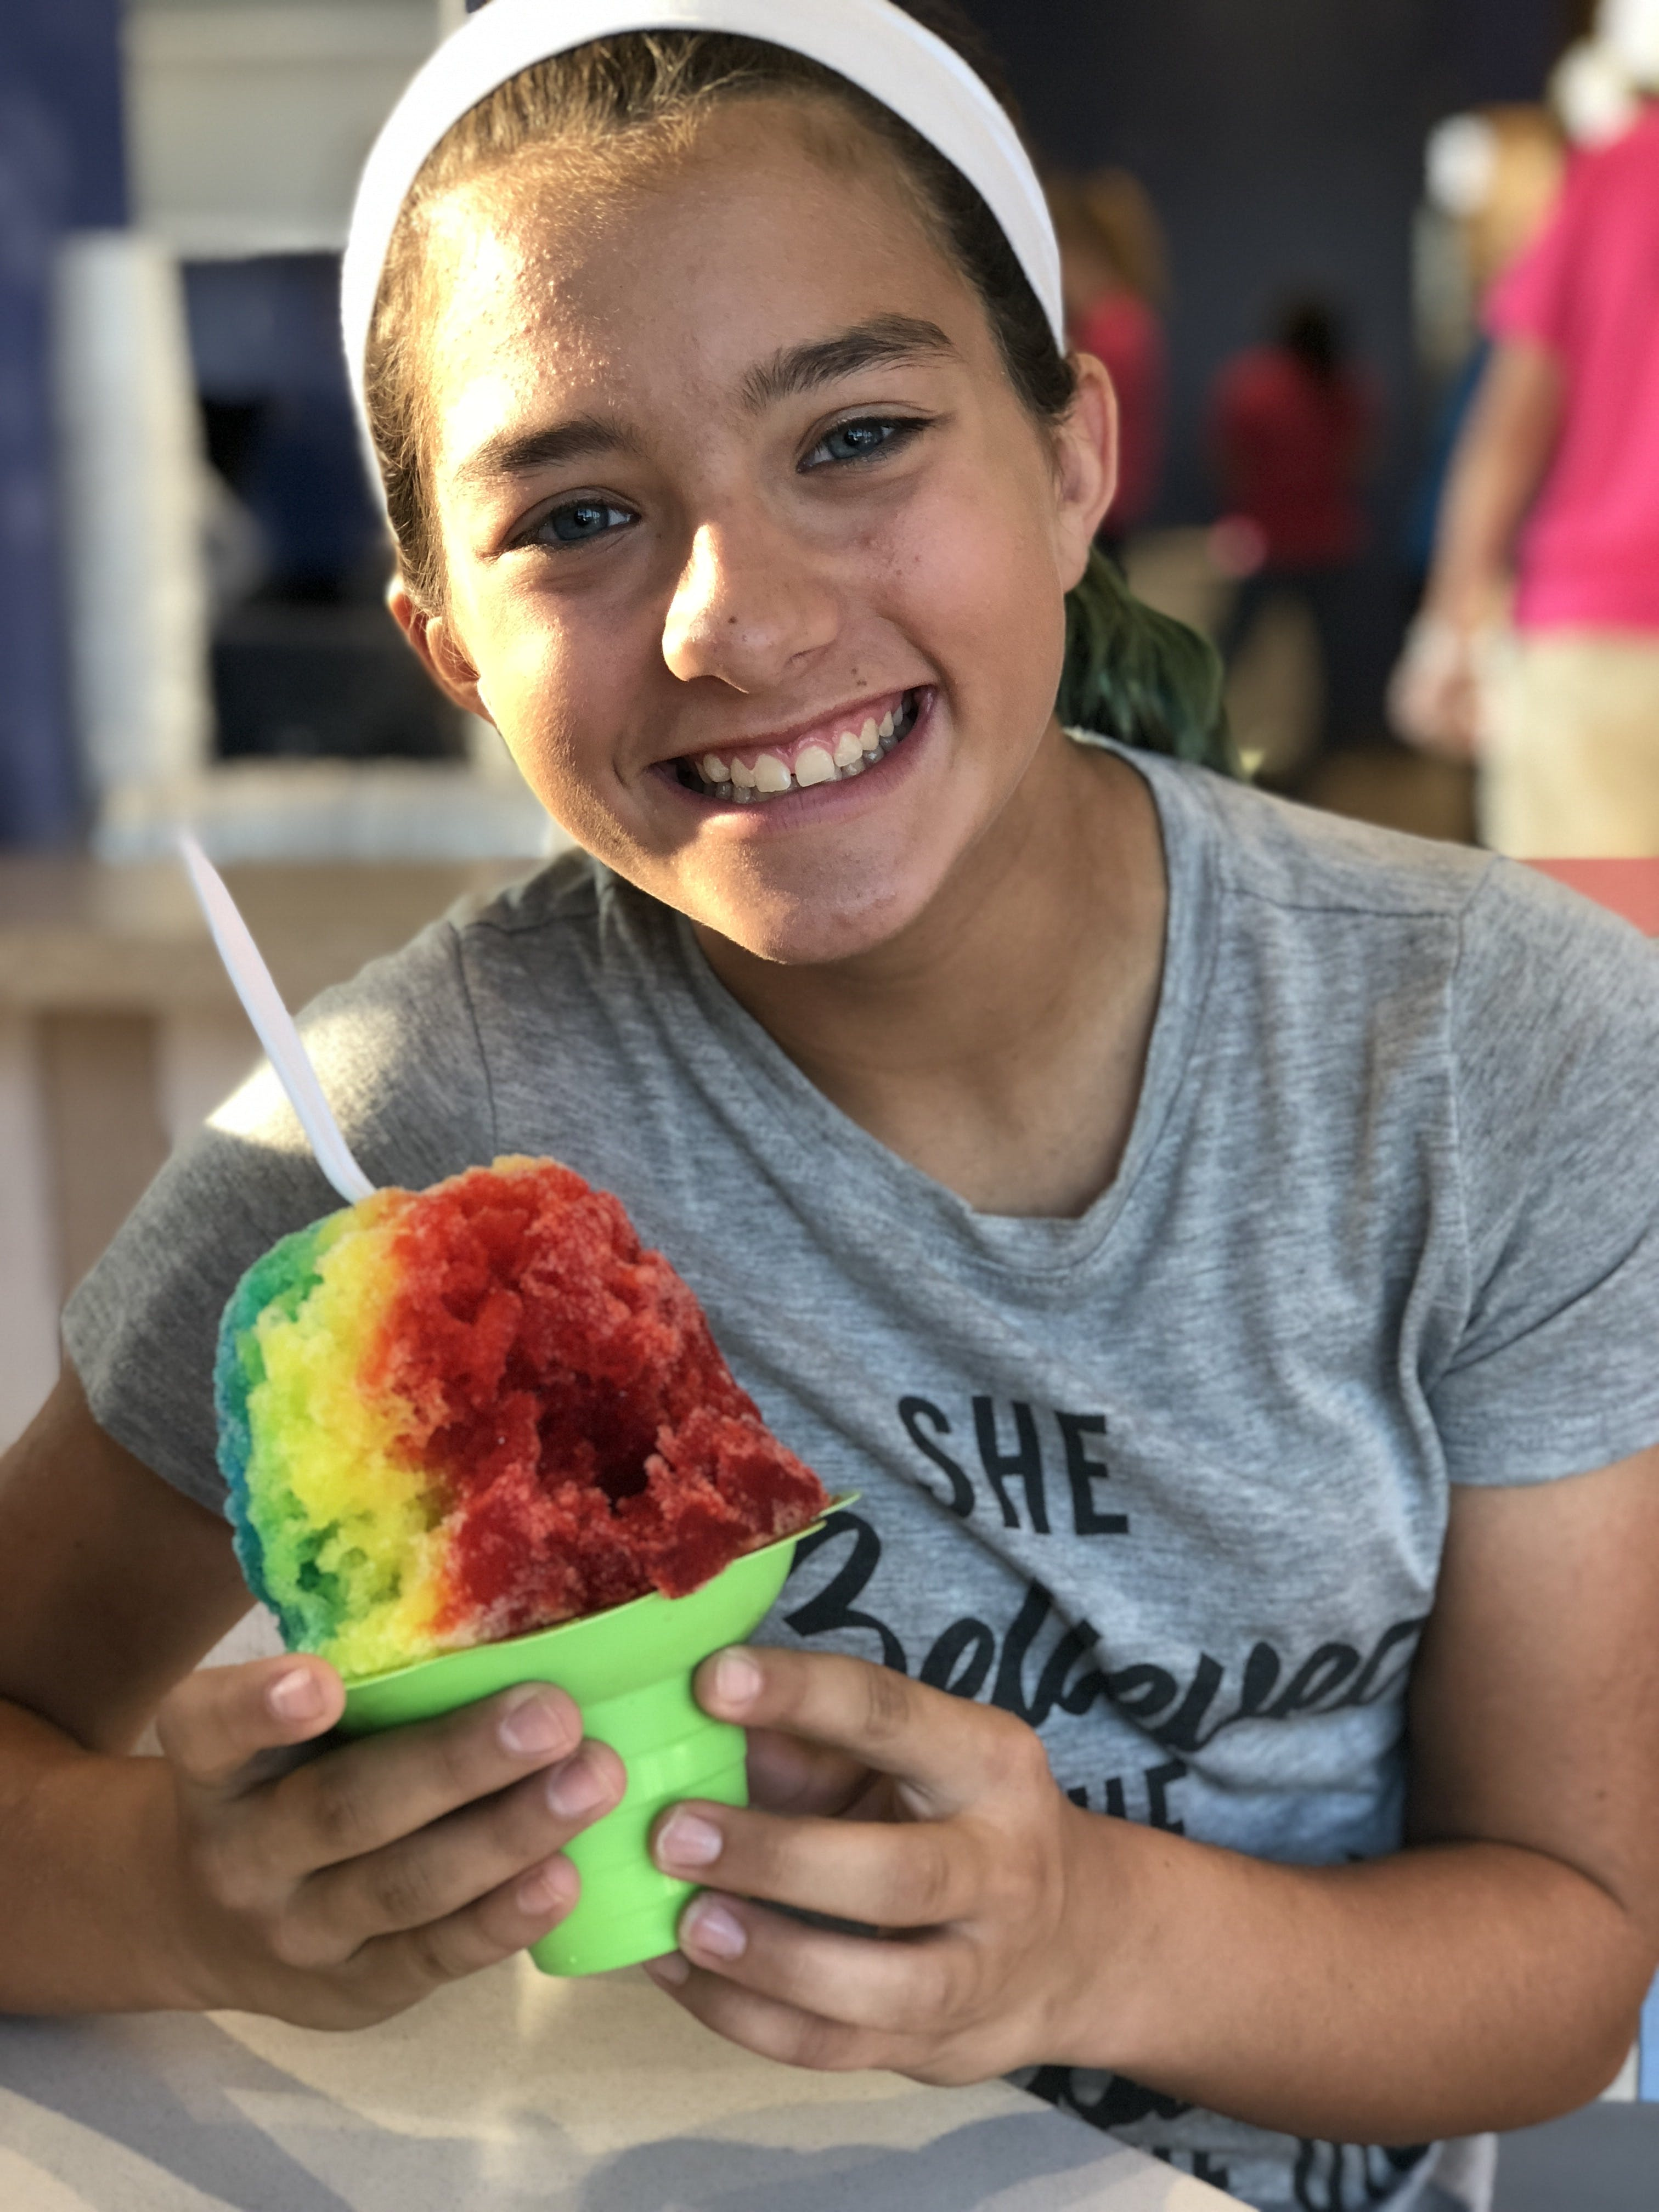 Girl Sitting on Chair While Holding Ice Cream